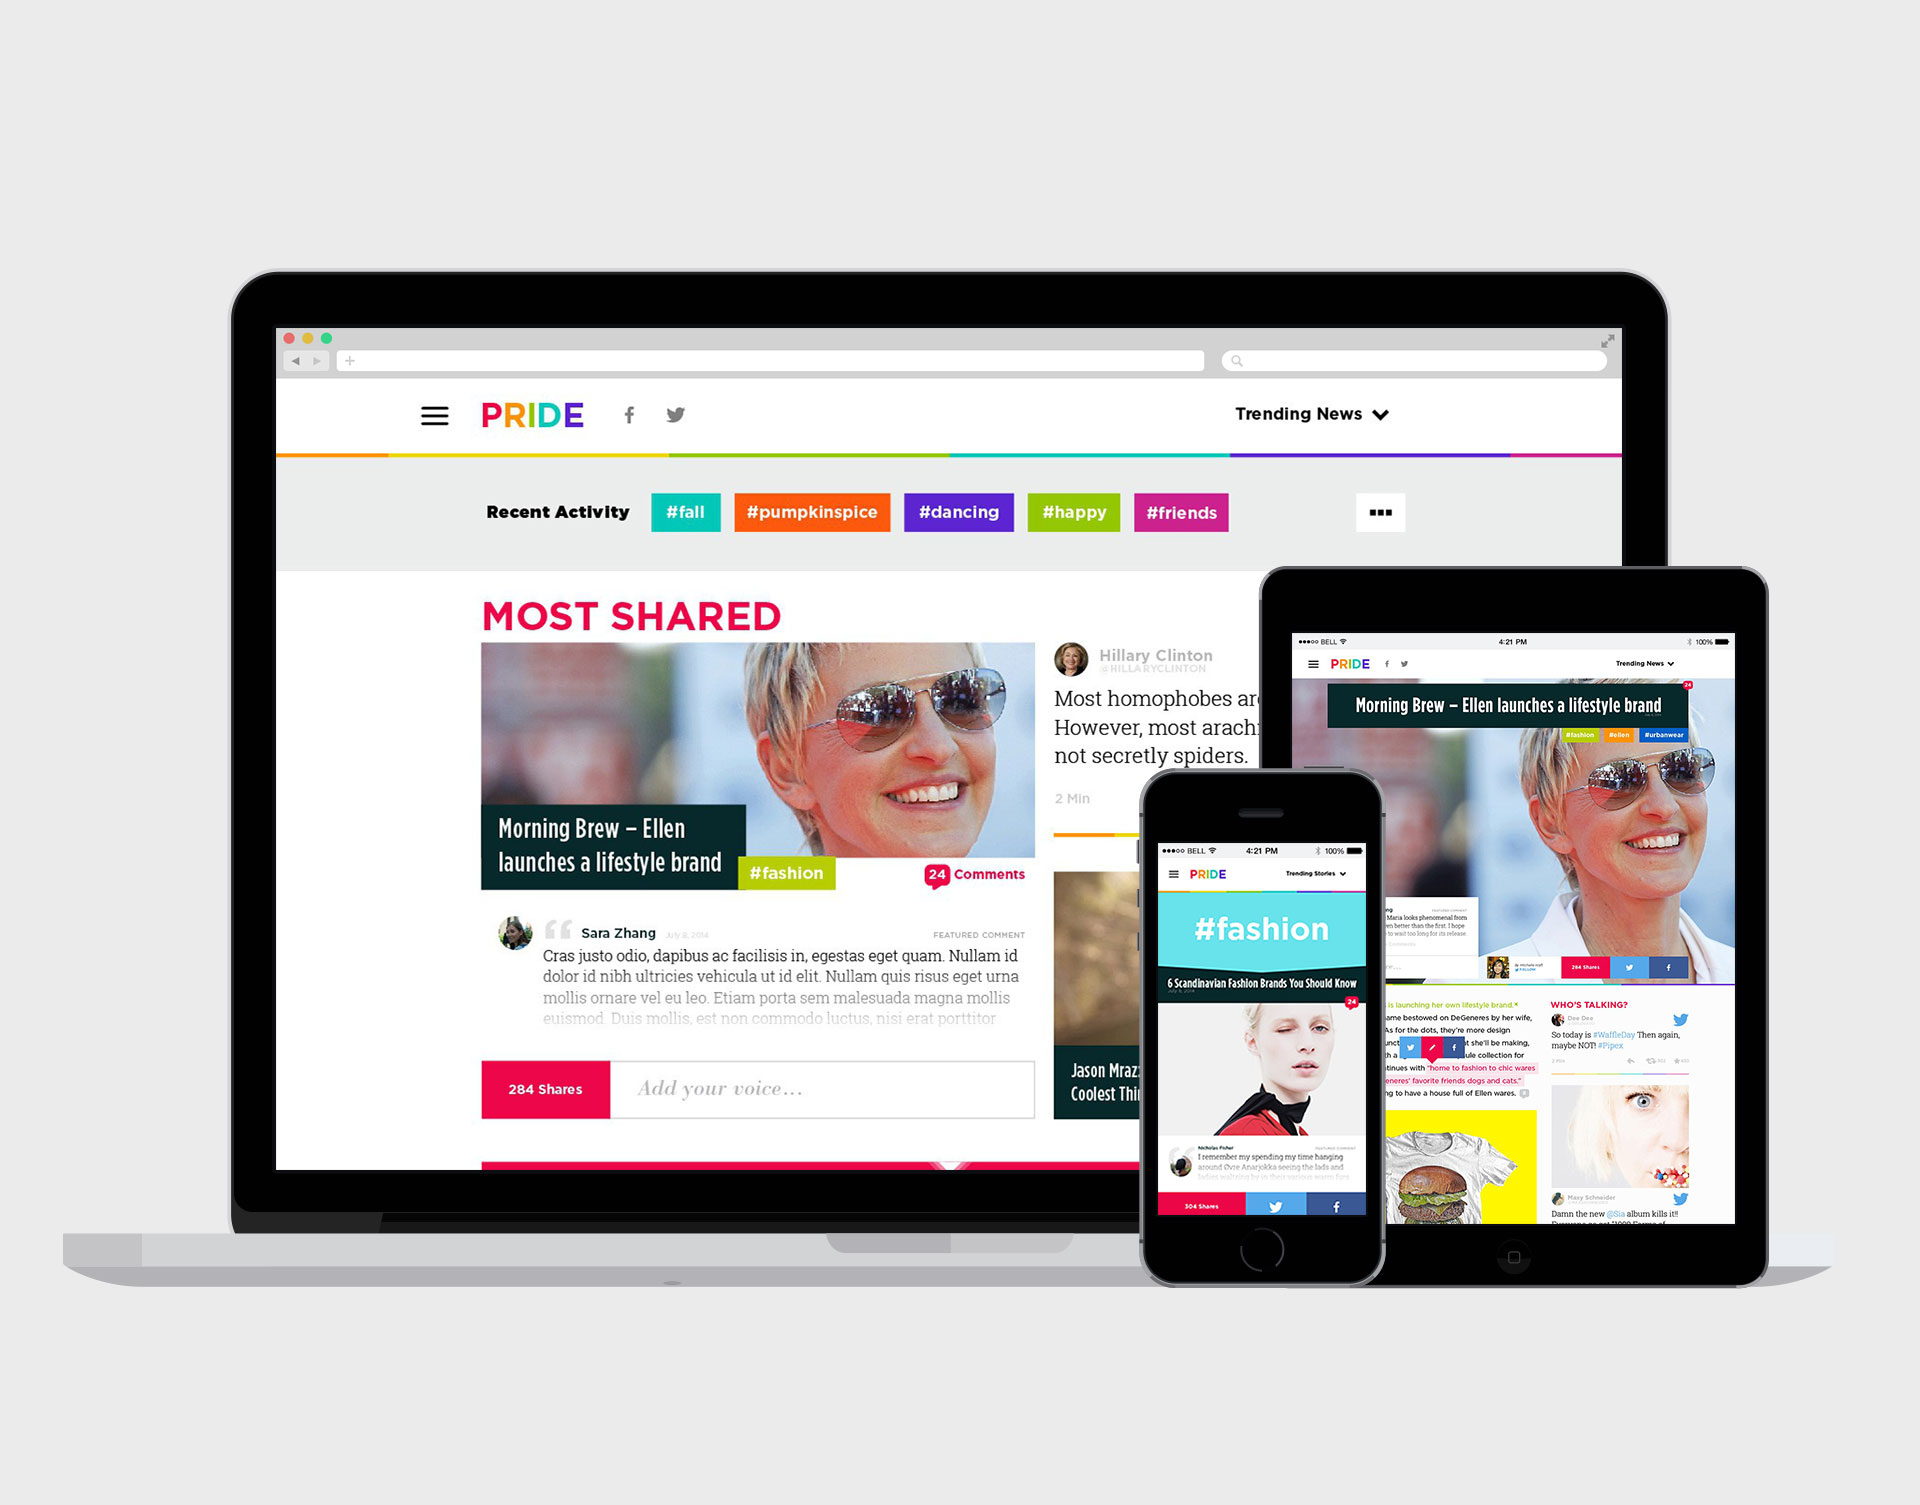 PRIDE   Launched by the world's leading LGBT media company, Pride.com is a new social entertainment network providing a content and conversation destination for millennials.   READ MORE >